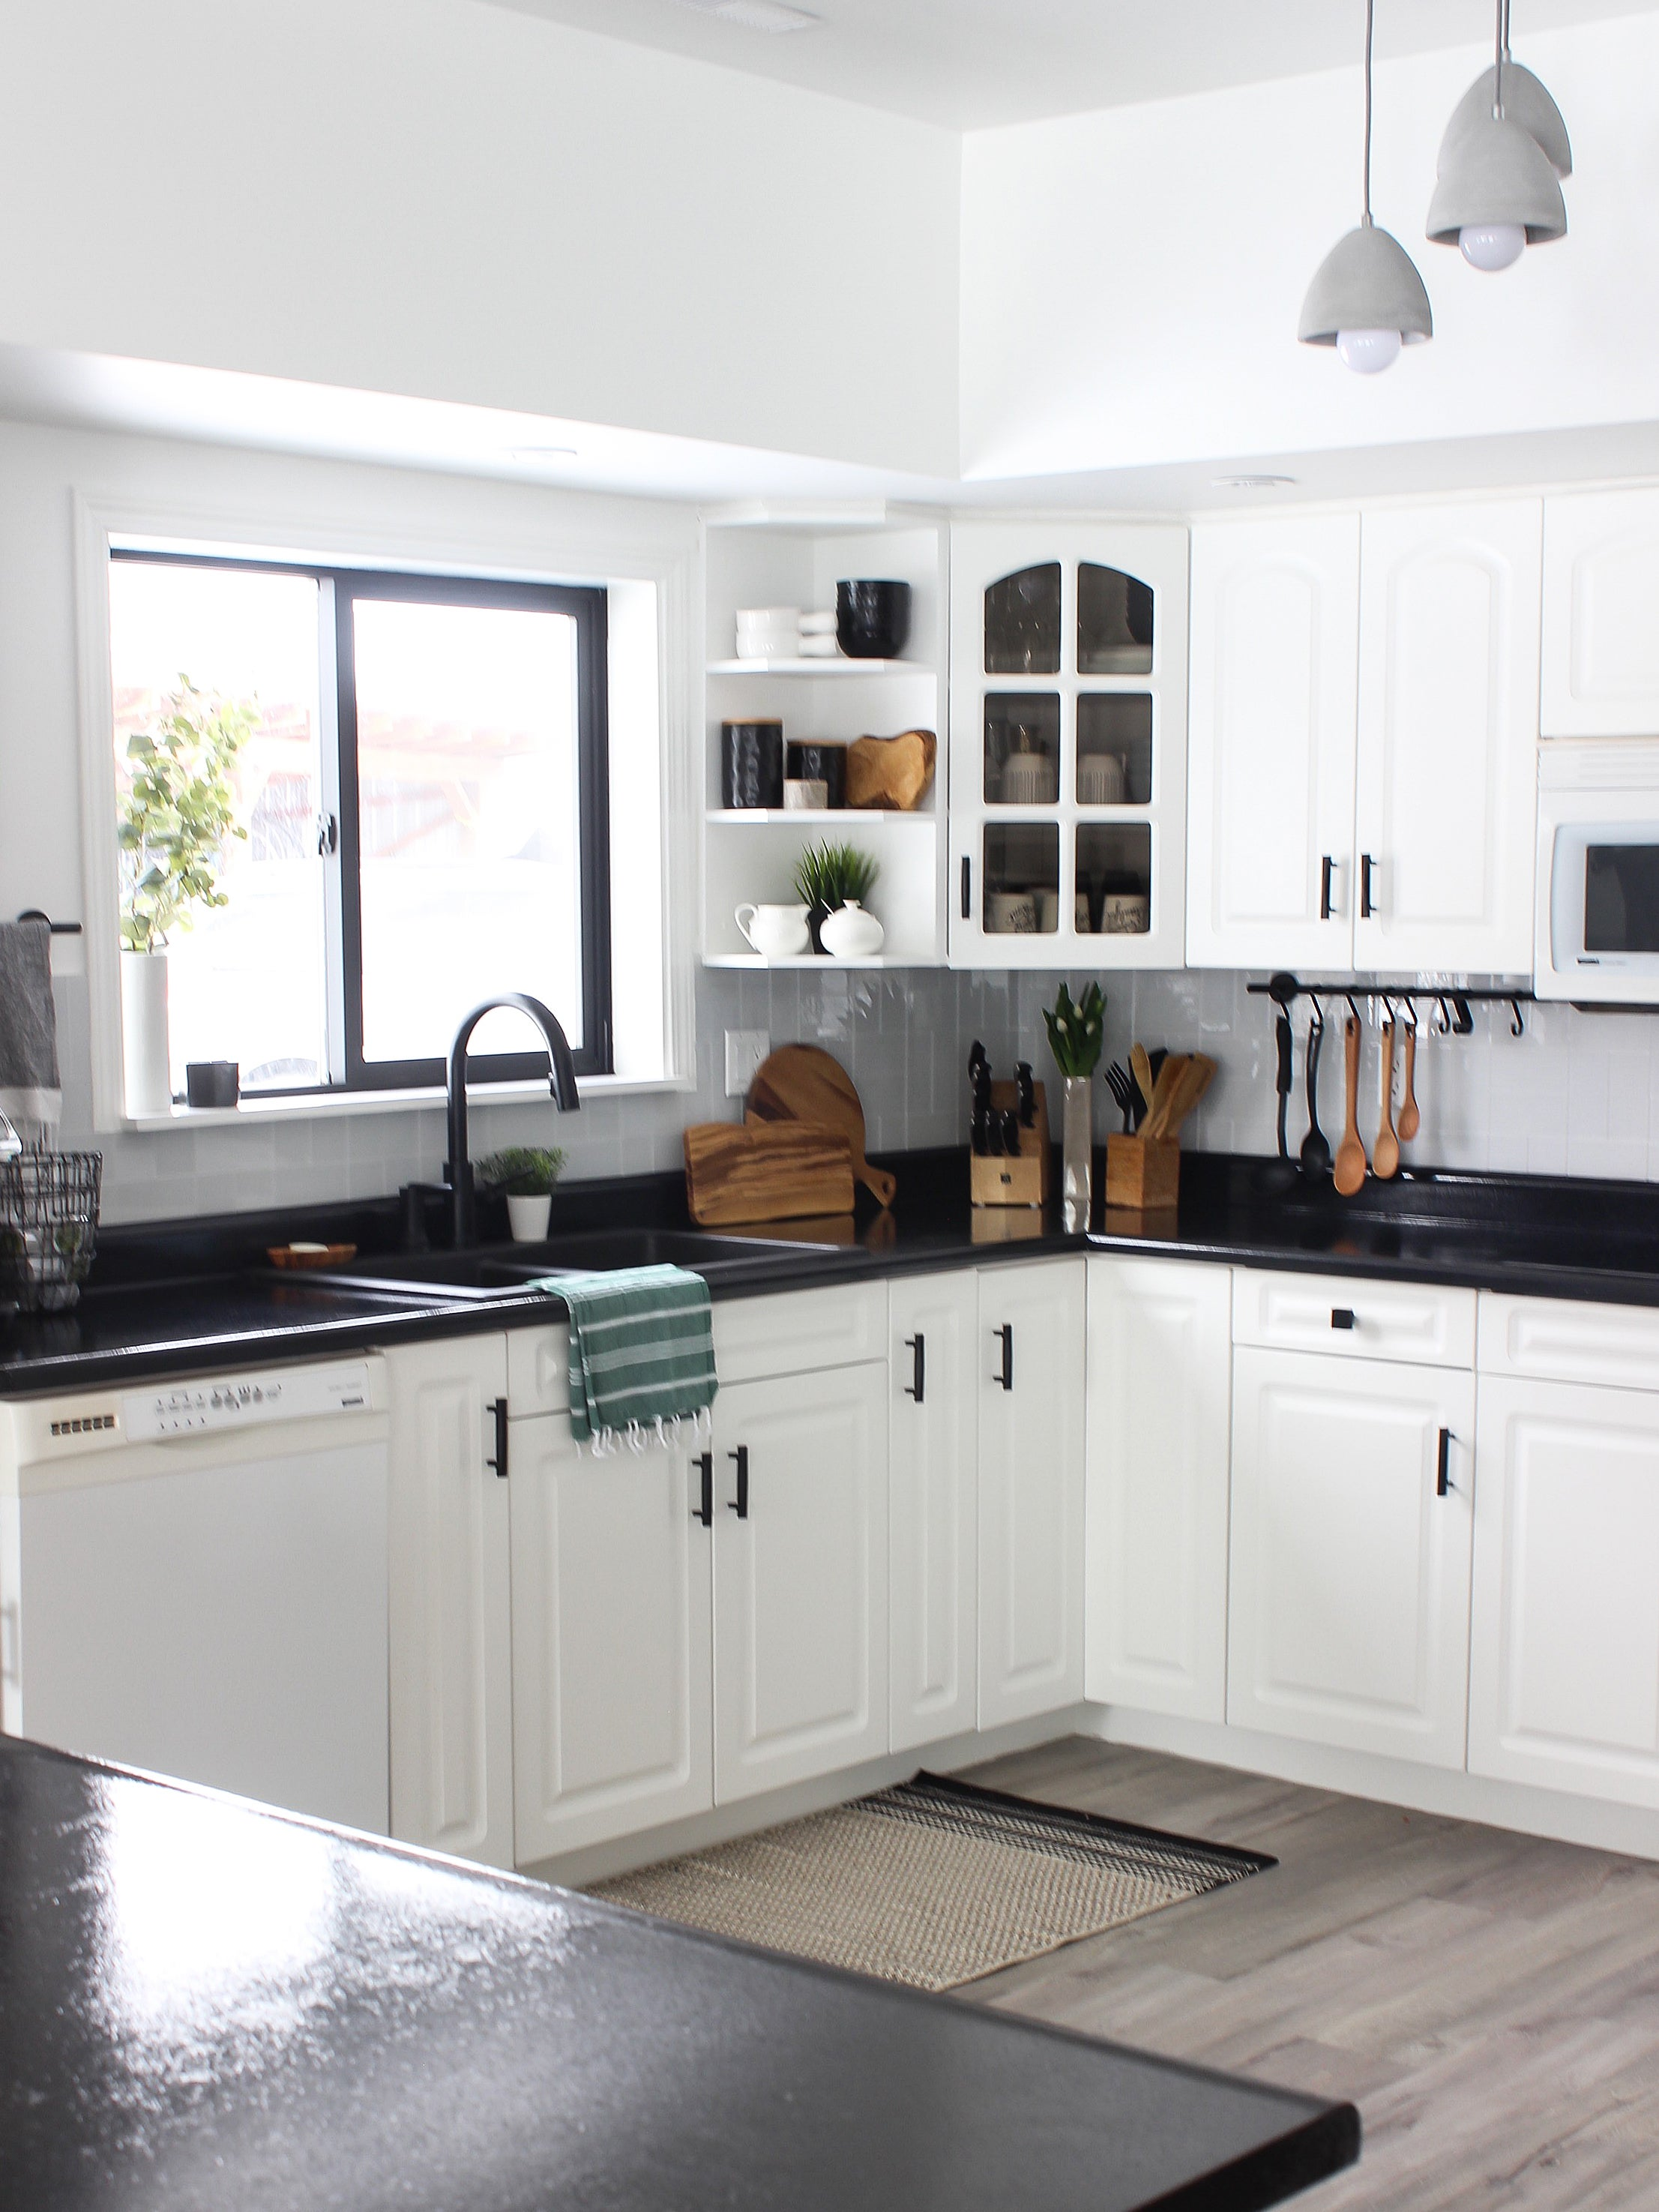 white kitchen cabinets with glass panel section